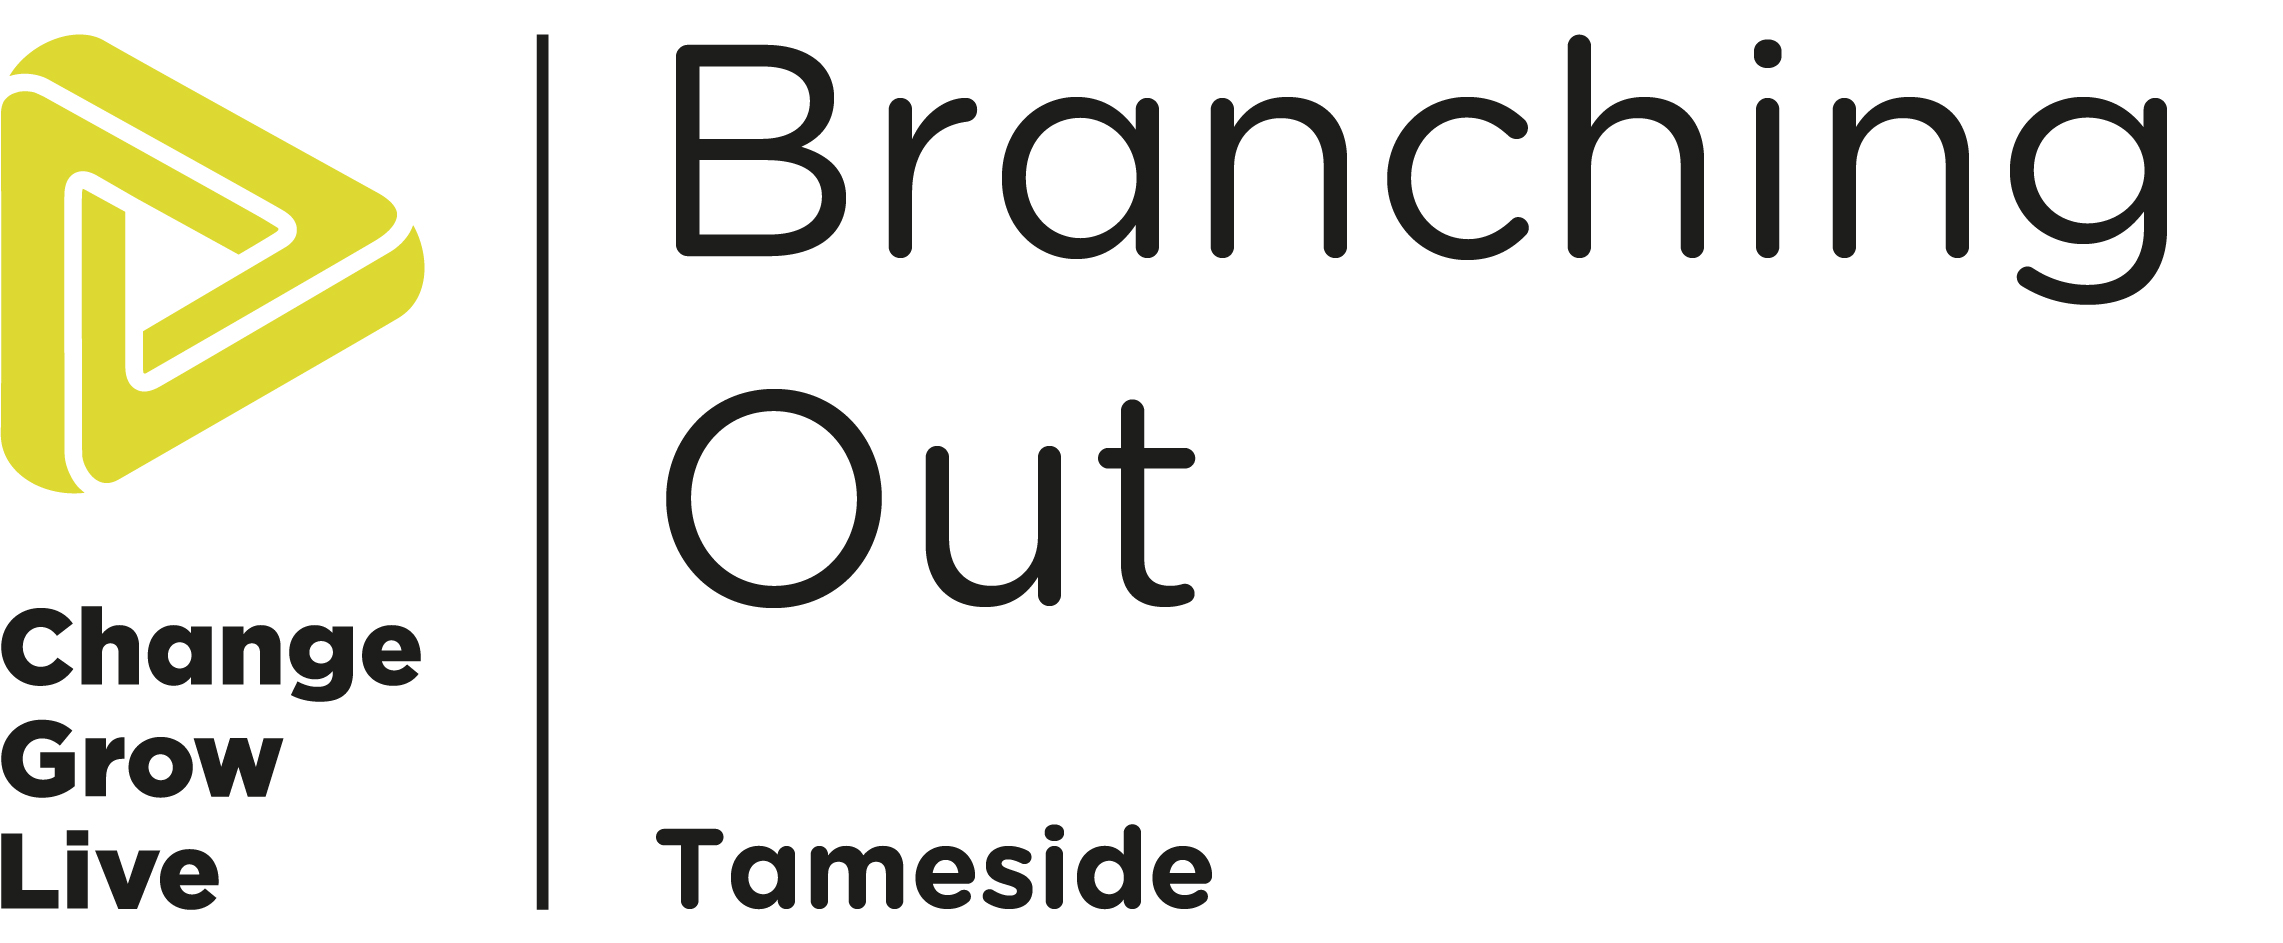 The Branching Out Logo in black